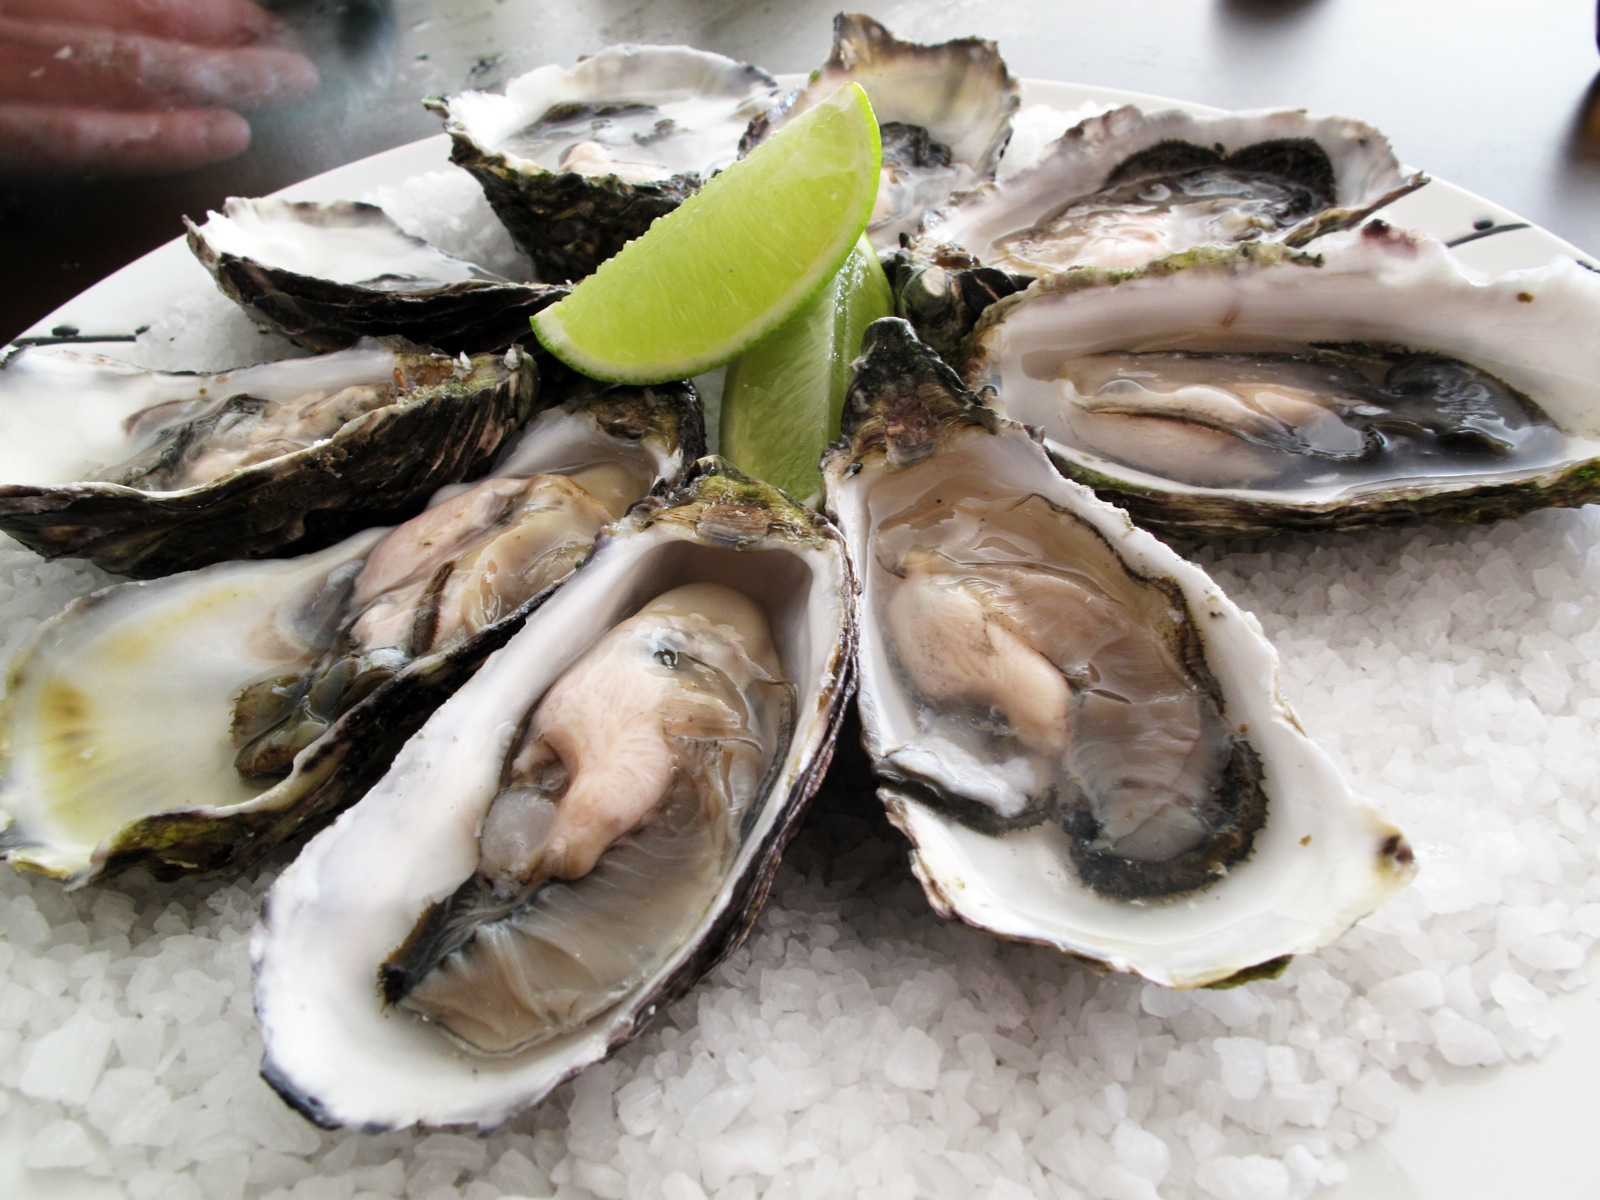 A platter of oysters topped with a lime for flavoring.